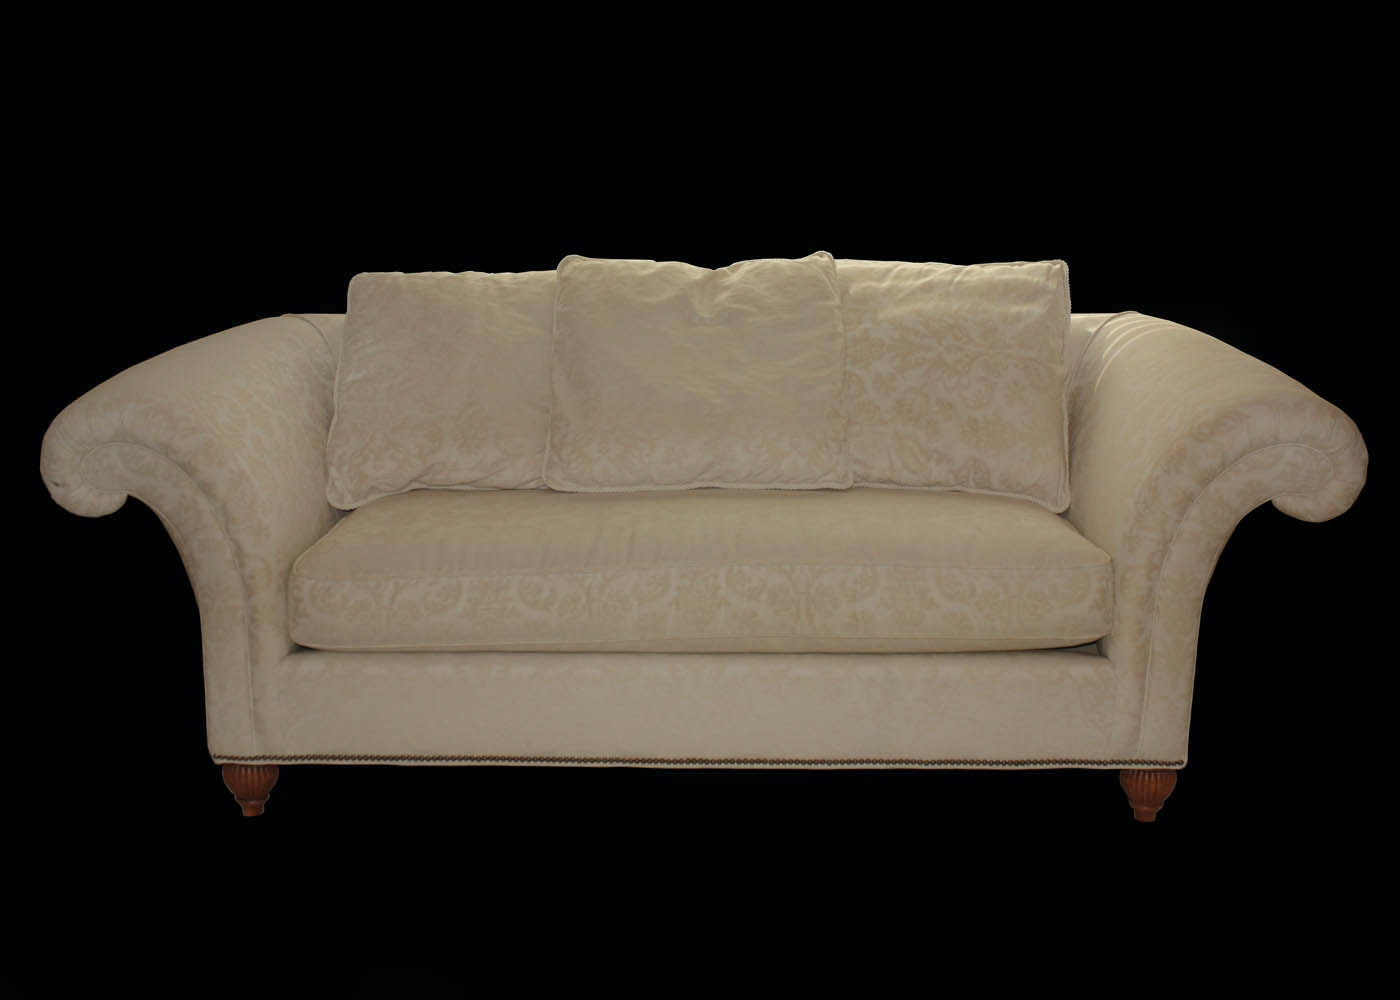 Milling Road Sofa By Baker Furniture Company